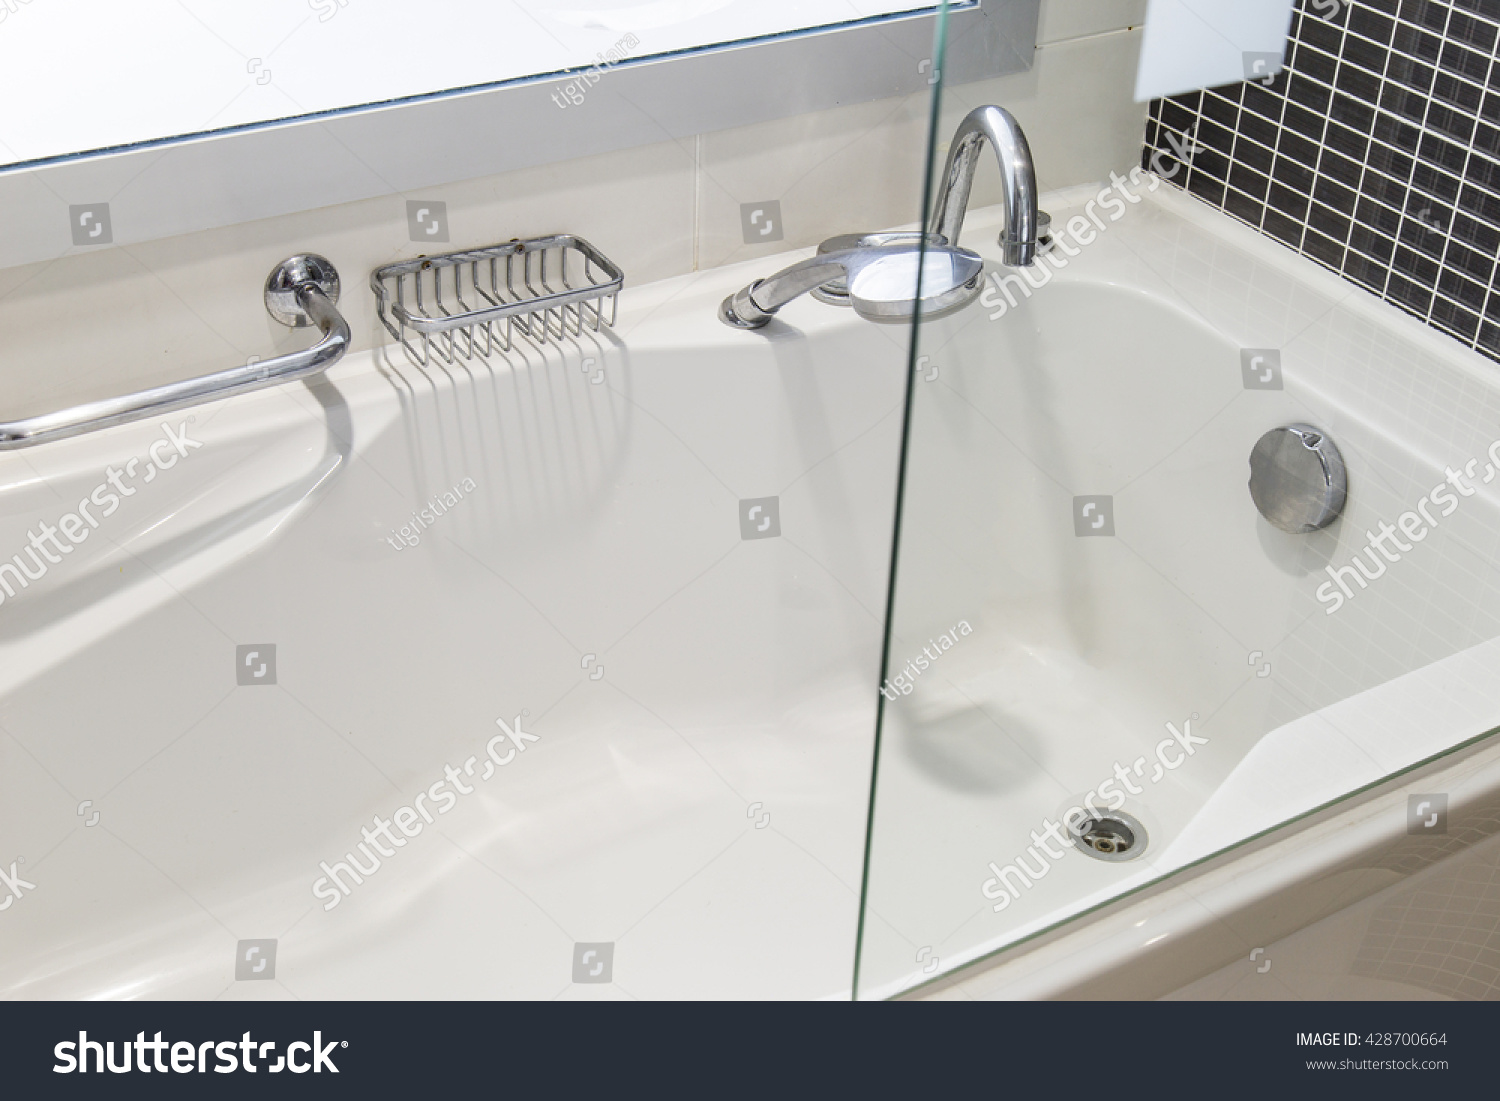 View of bath tube with day light from the window, very shallow depth ...